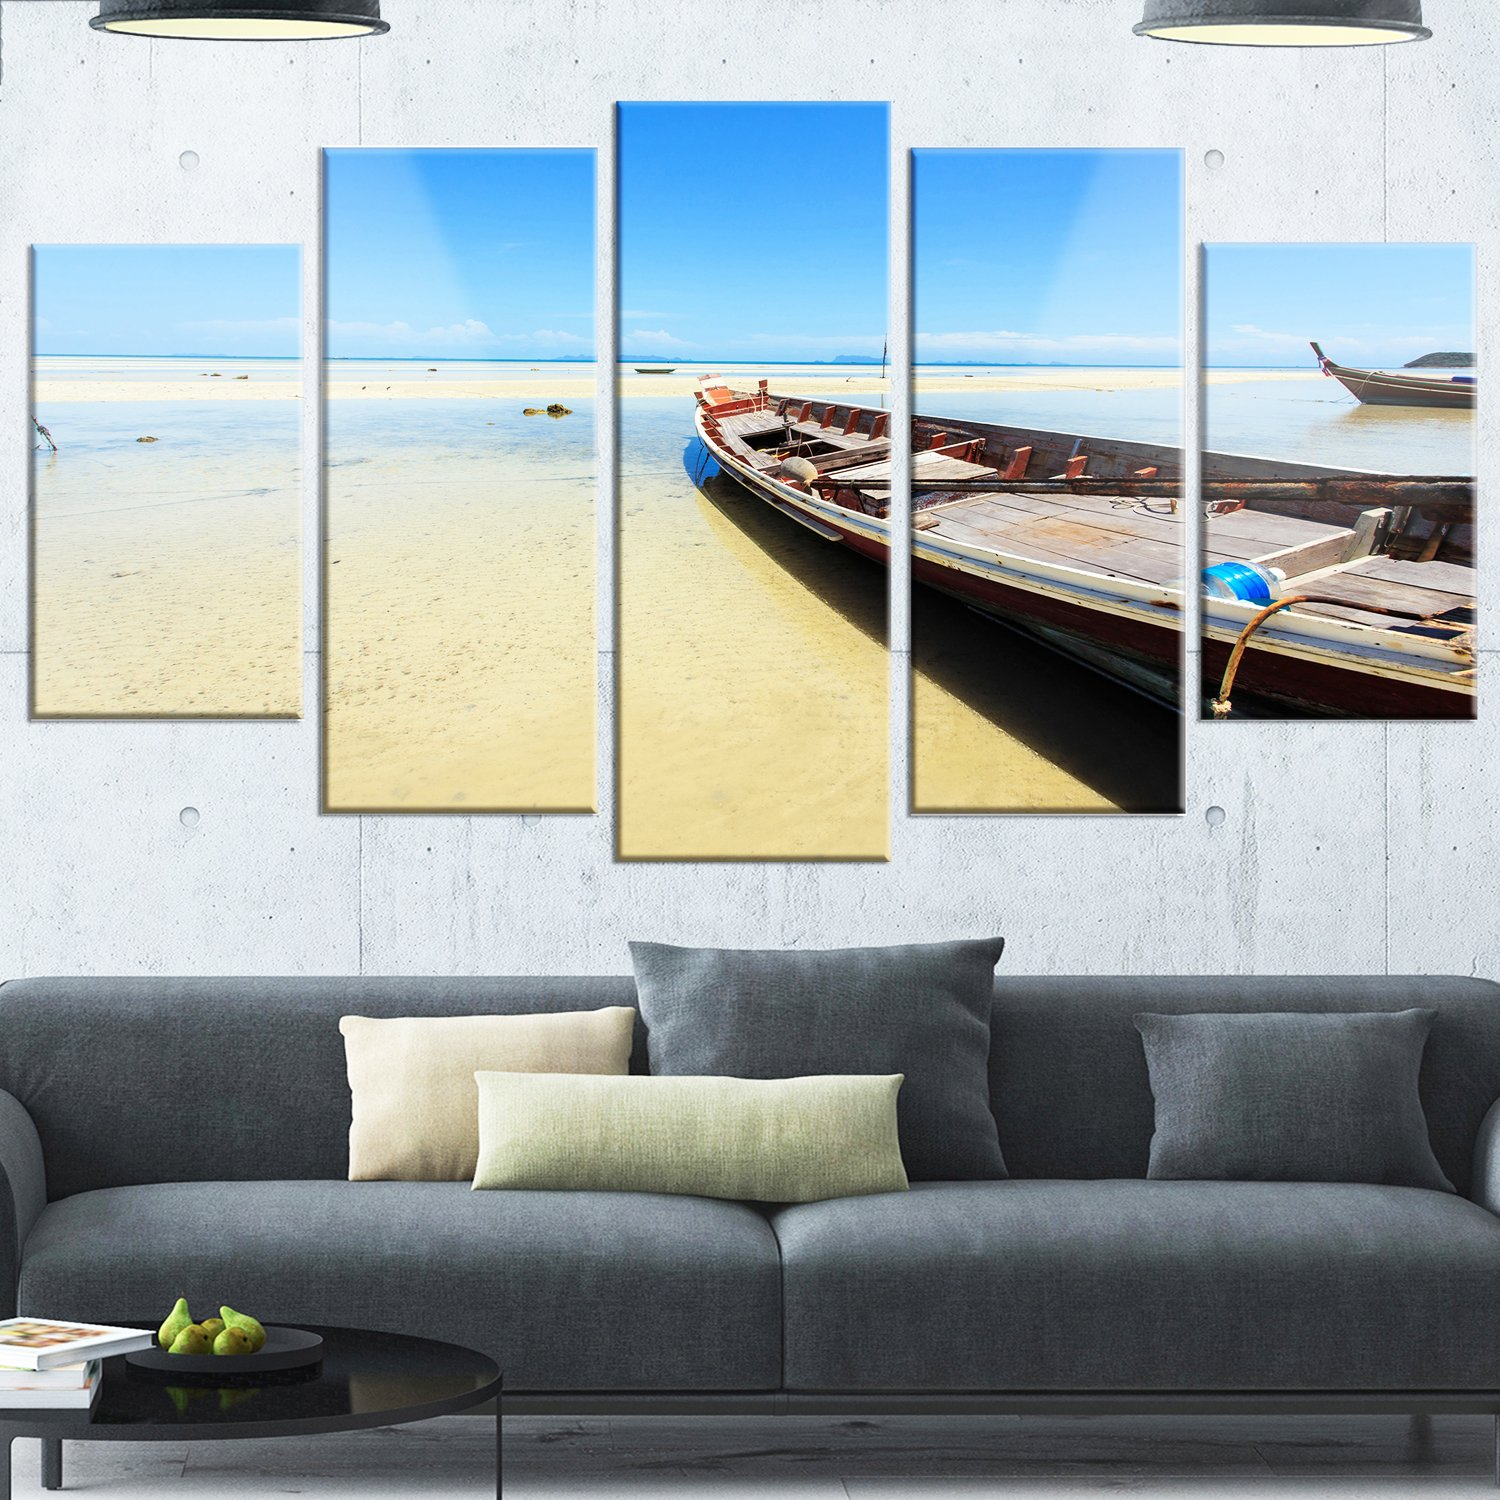 Designart MT14723-373 Traditional Thai Boat on Beach - Modern Seashore Canvas Metal Wall Art,Blue,60x32 by Design Art